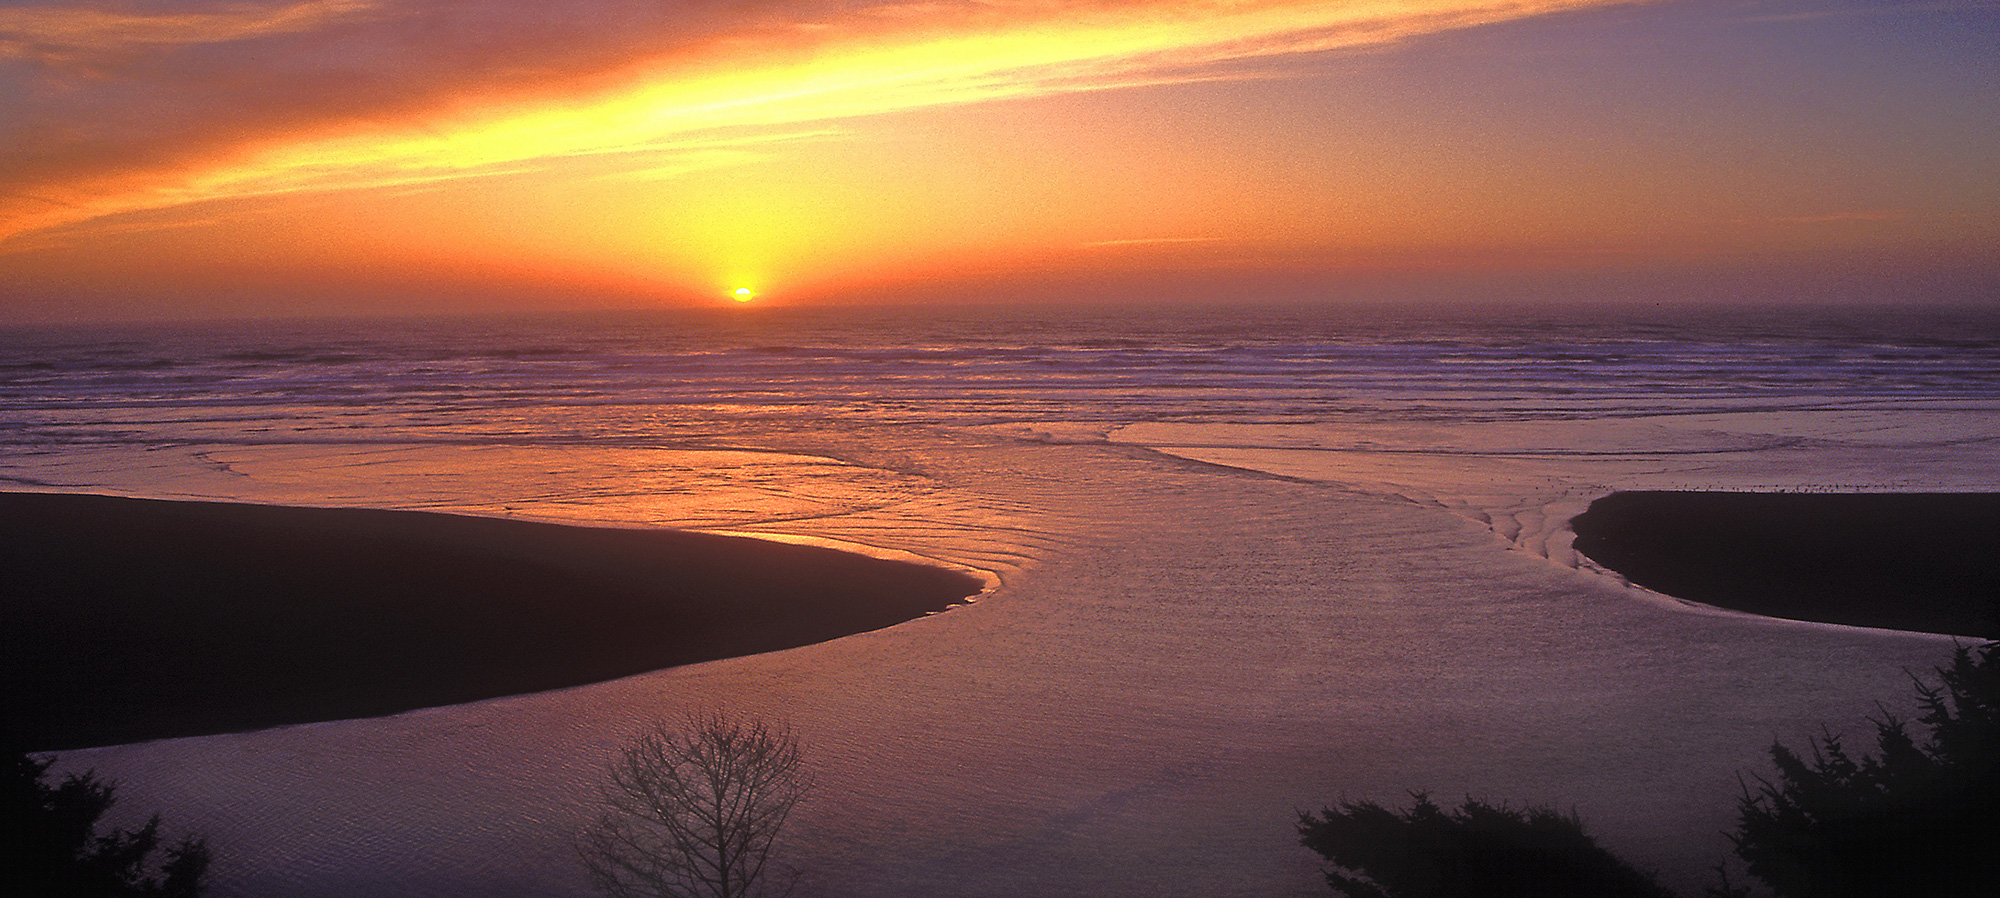 The mouth of mad river at sunset